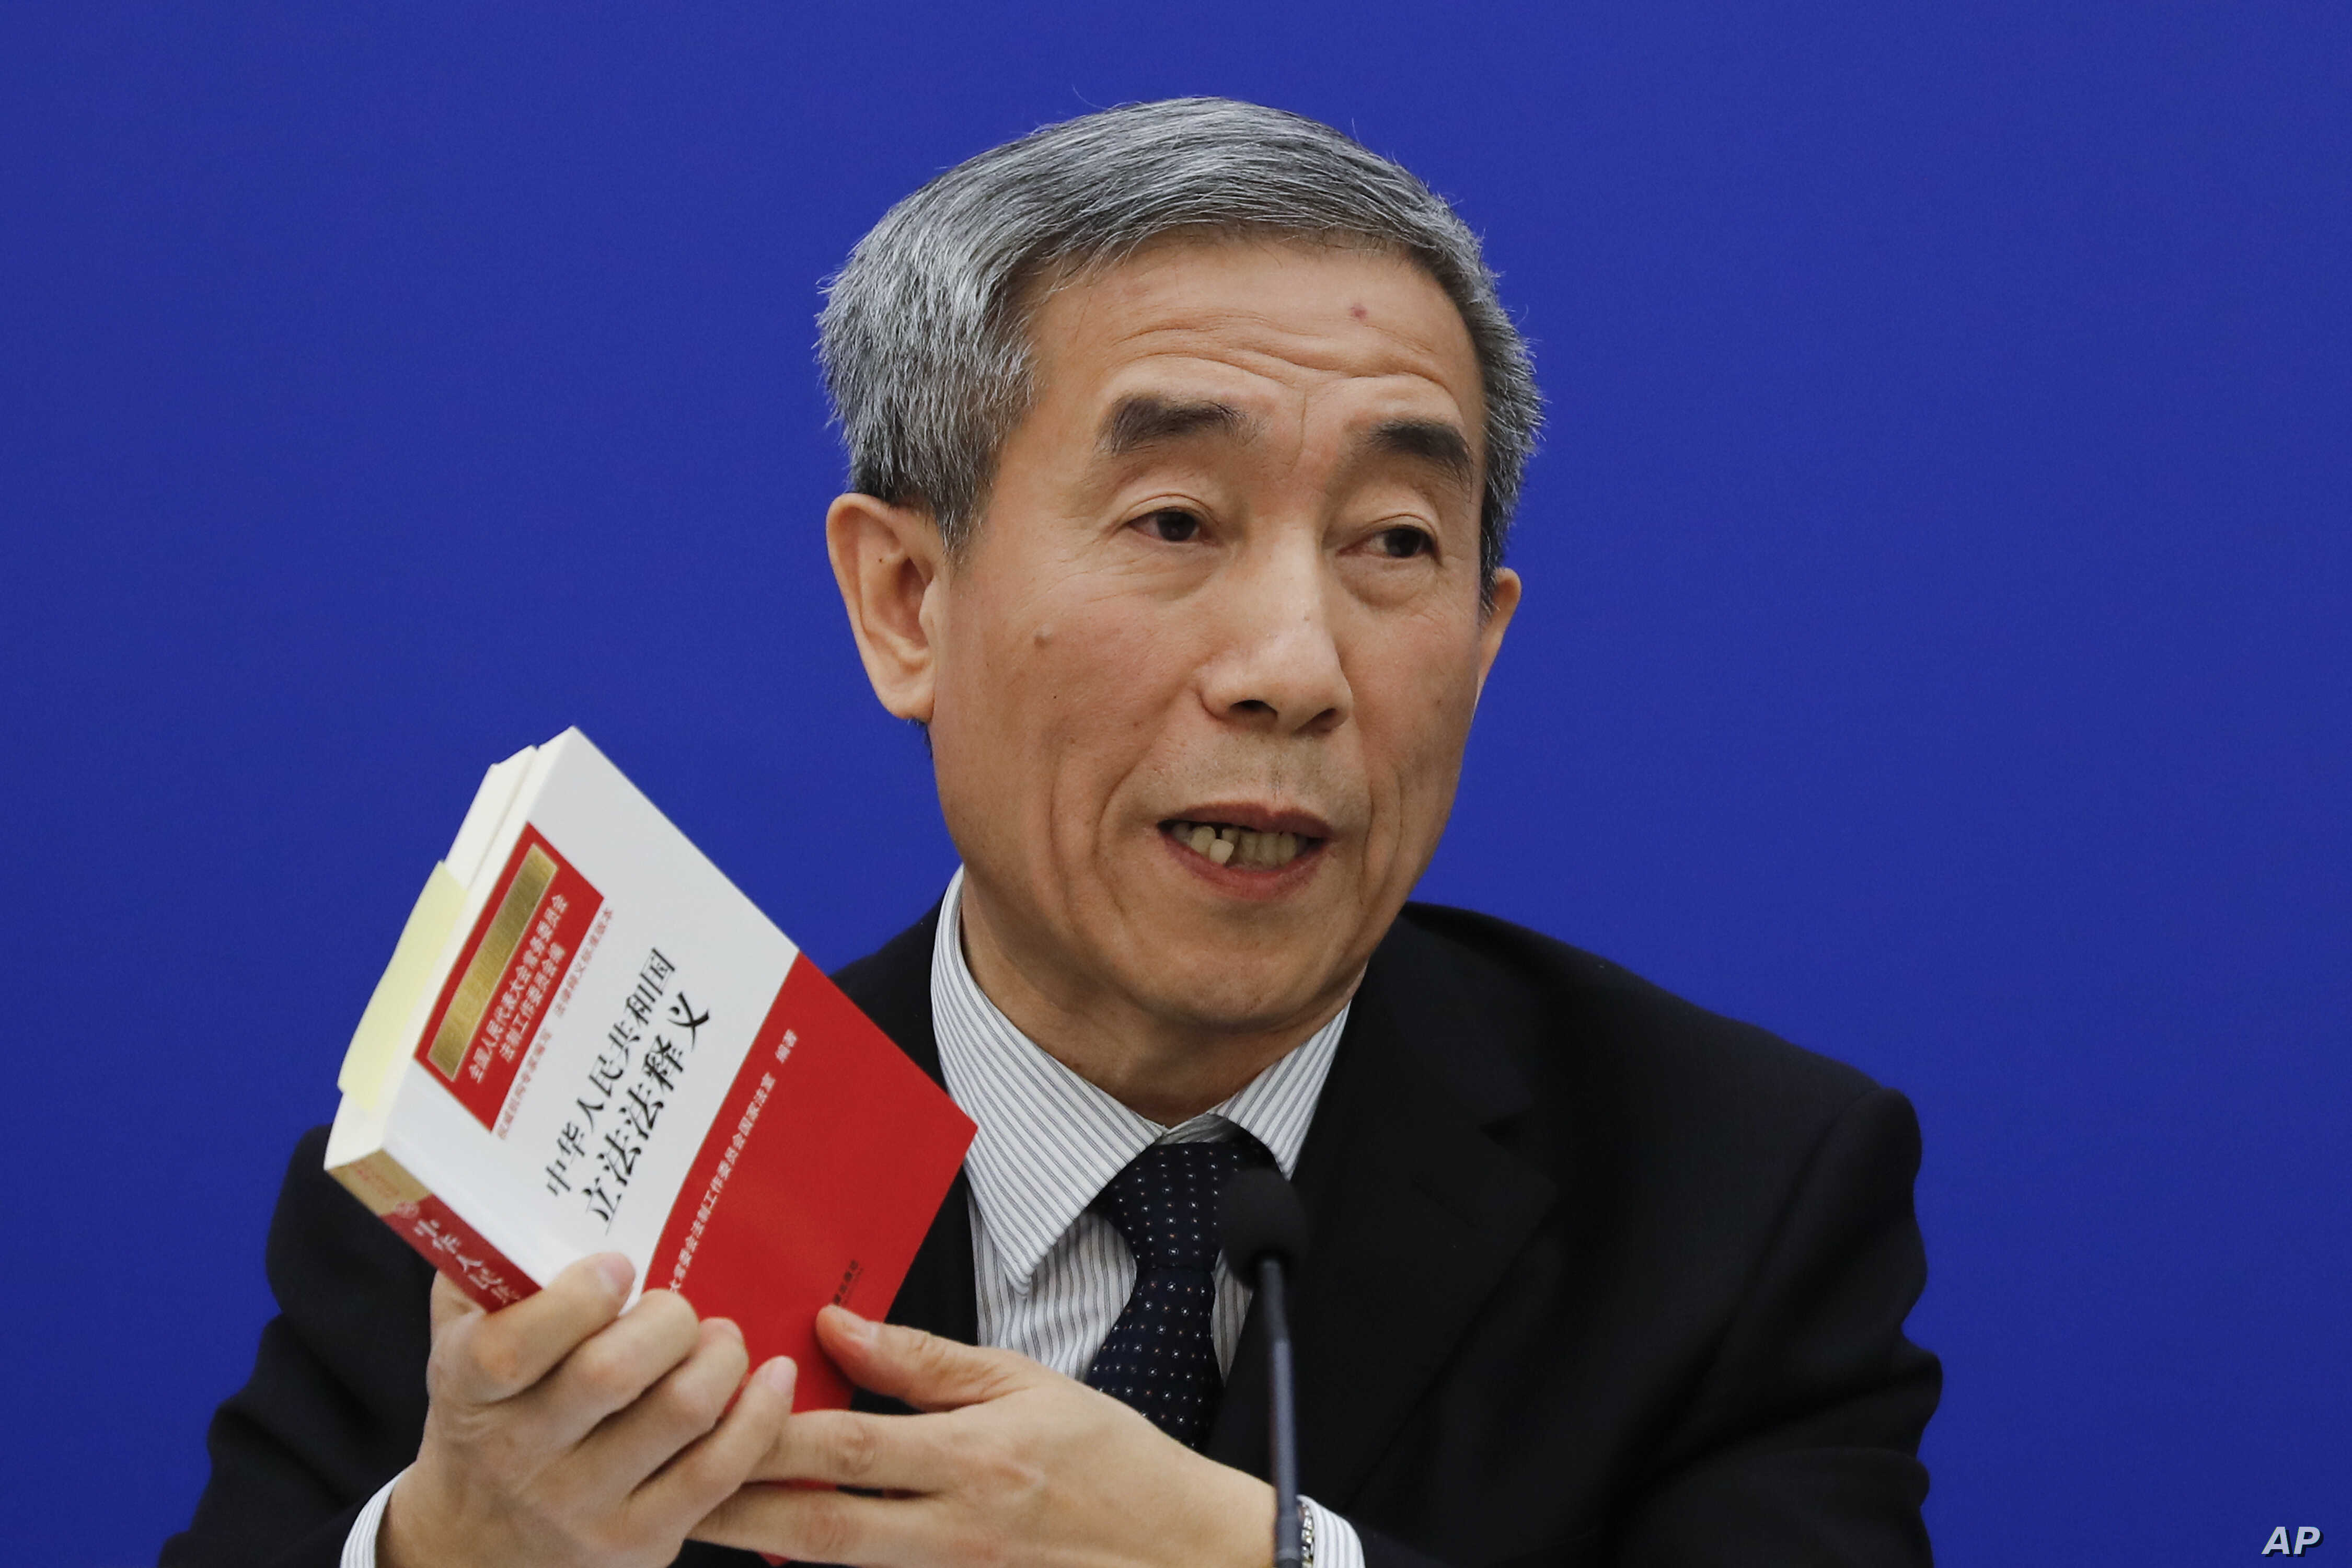 Li Fei, deputy secretary general of the National People's Congress Standing Committee, holds a China's legislation law book while speaking during a press conference at the Great Hall of the People in Beijing, Nov. 7, 2016.